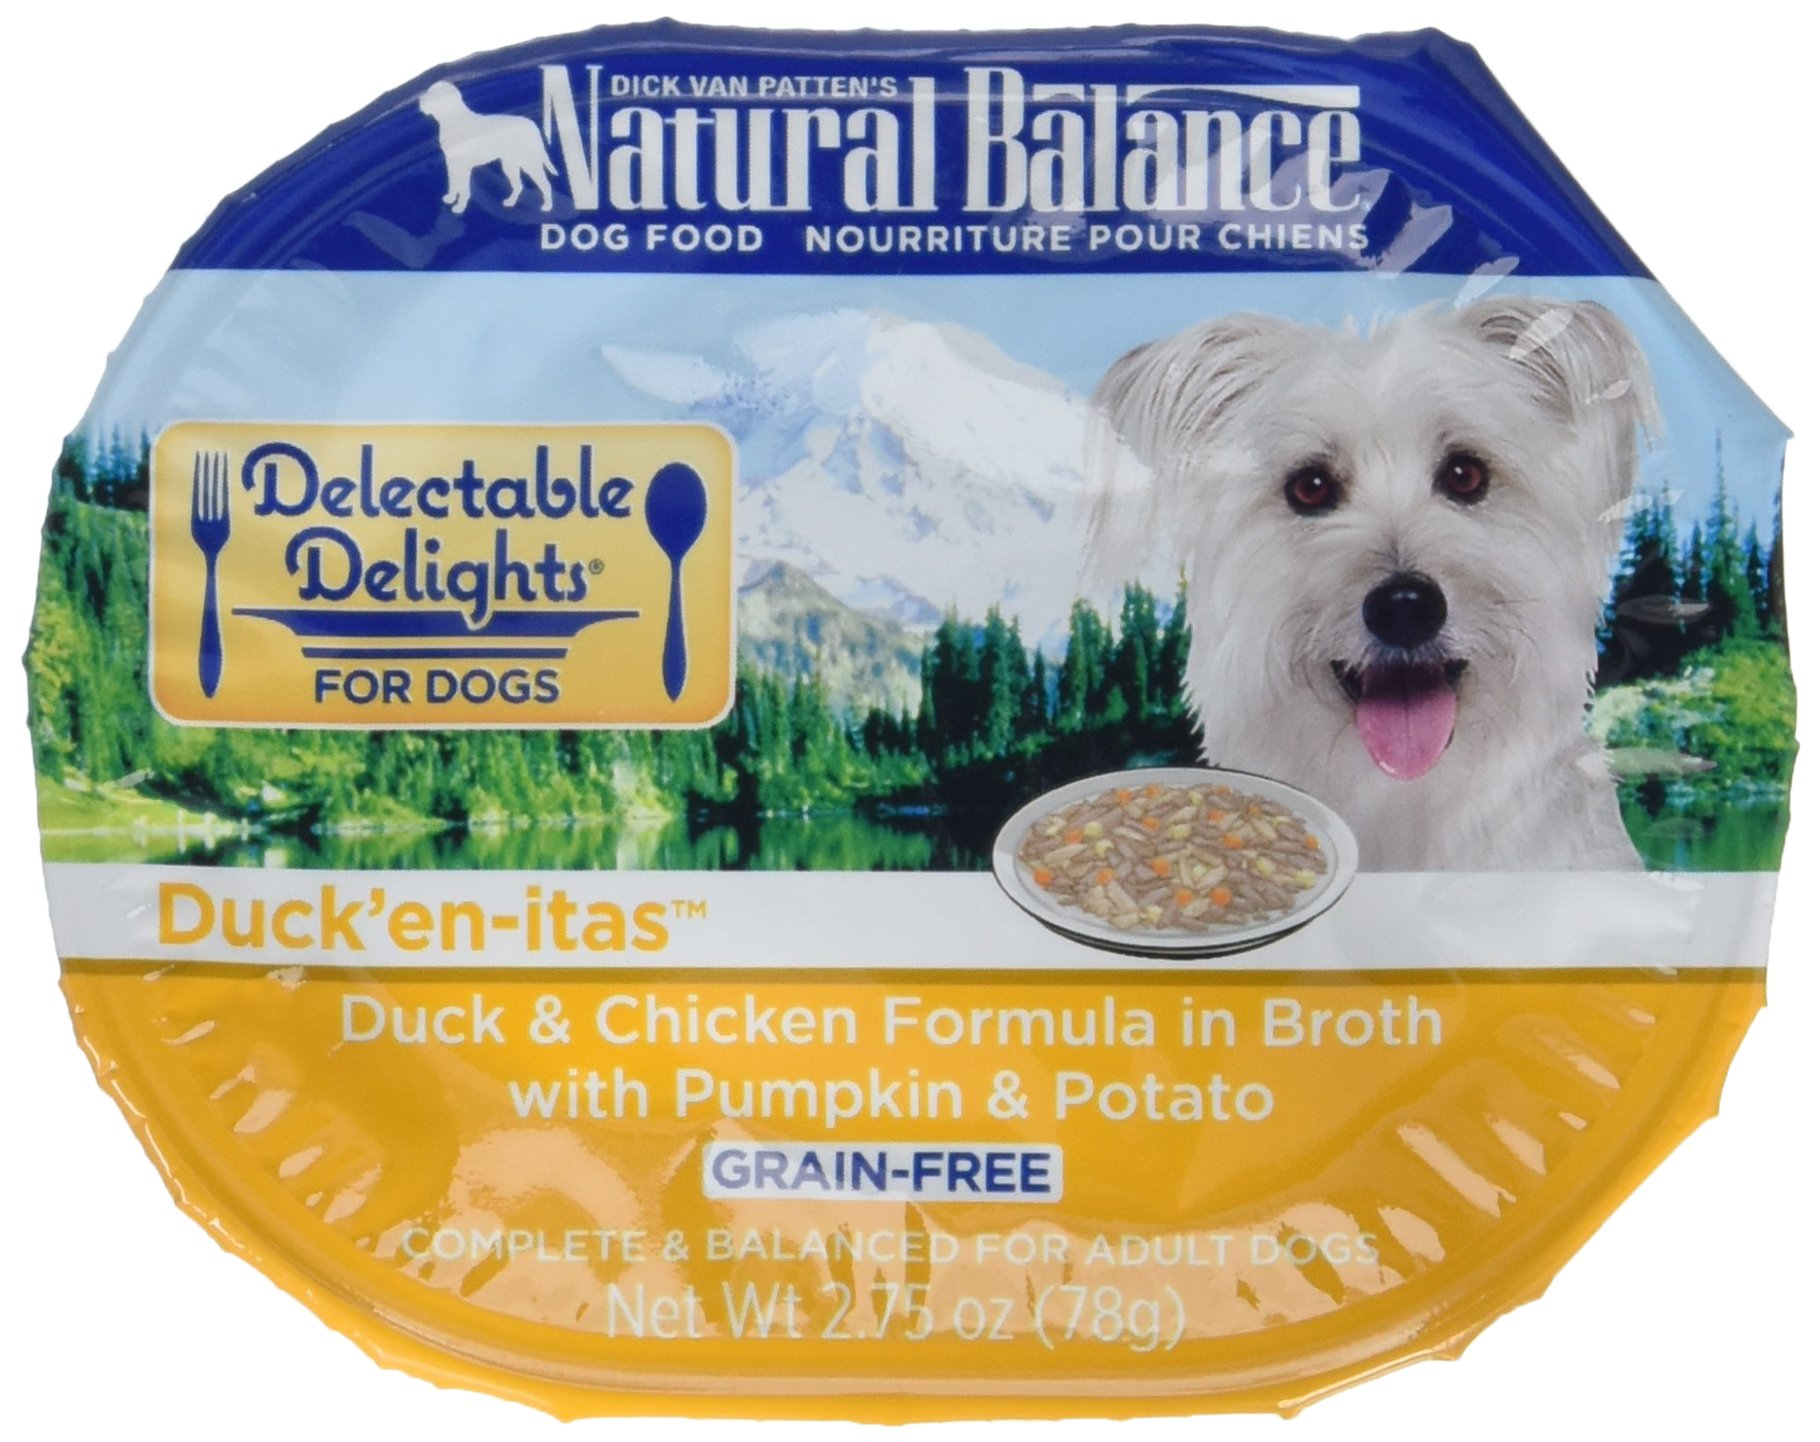 Natural Balance Delectable Delights Wet Dog Food Cups, Duck'En-Itas Duck And Chicken Formula In Broth With Pumpkin And Potato, 2.75 Oz (Pack Of 24) by Natural Balance